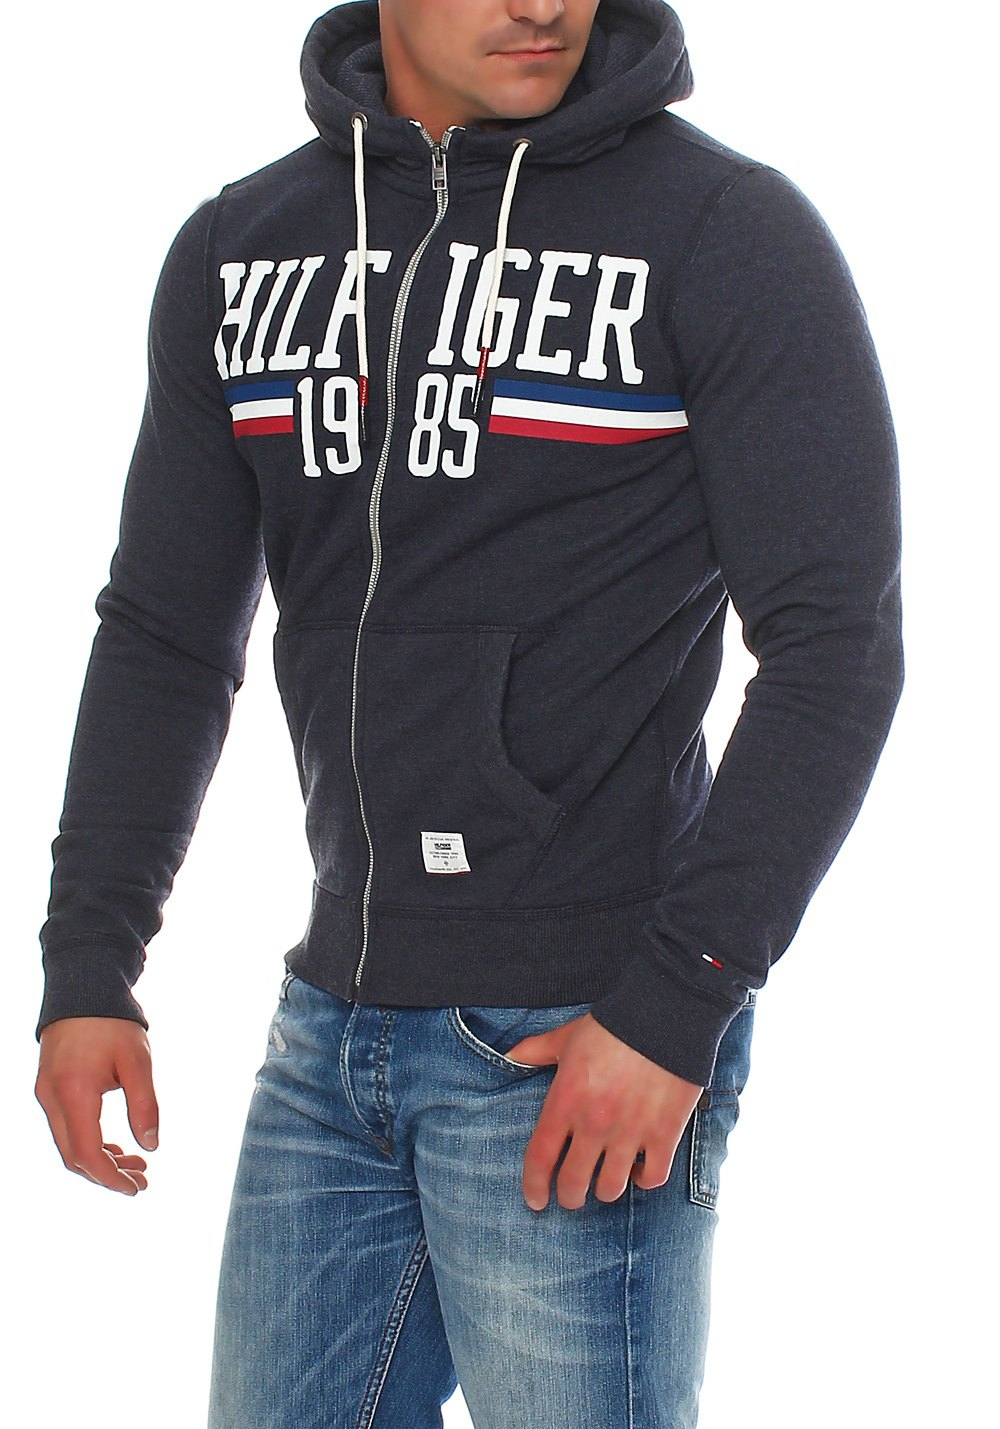 tommy hilfiger denim basic logo hoodie sweatjacke jacke s m l xl xxl ebay. Black Bedroom Furniture Sets. Home Design Ideas